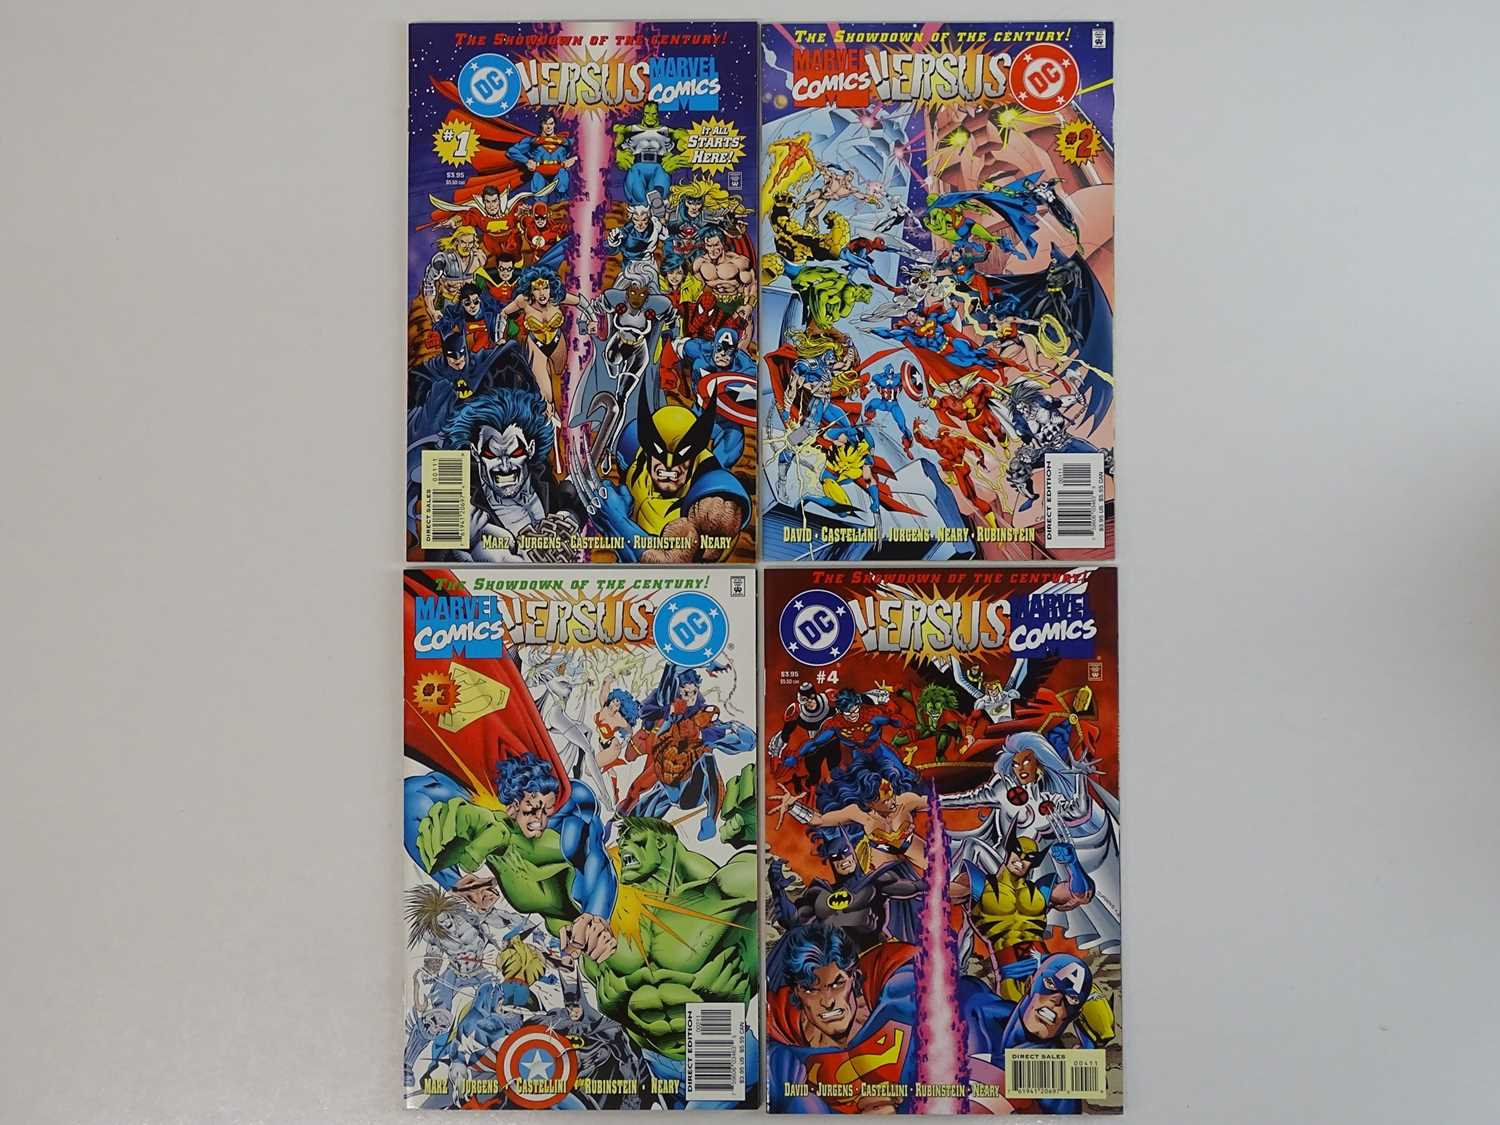 DC VERSUS MARVEL COMICS #1, 2, 3, 4 - (4 in Lot) - (1996 - MARVEL/DC) - Complete 4 x Issue Limited